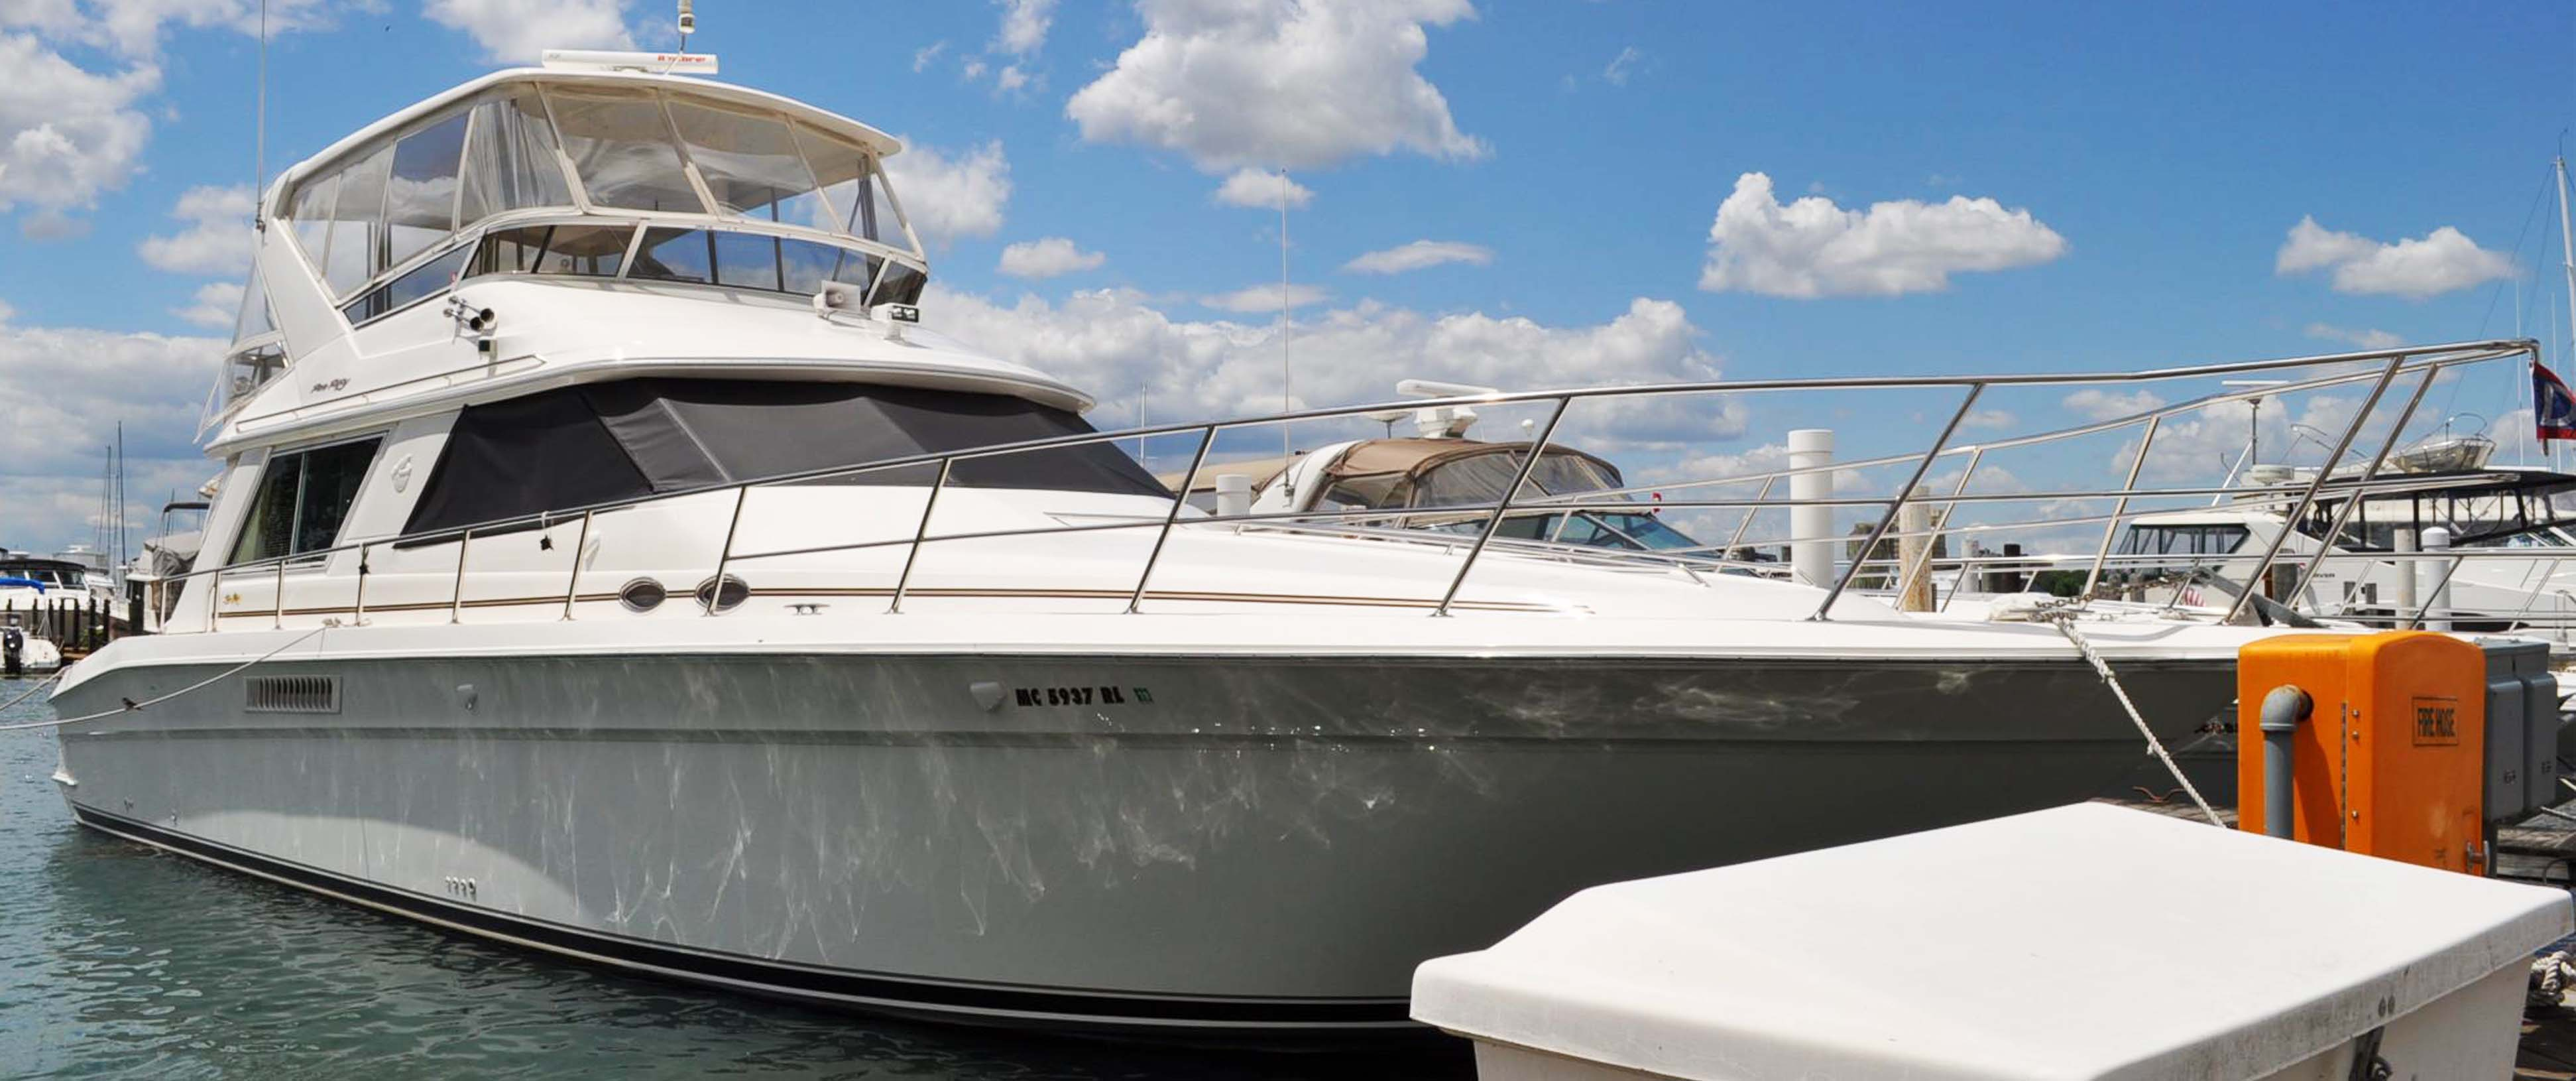 Temptation Yacht Sales Your Online Freshwater Boat Brokerage